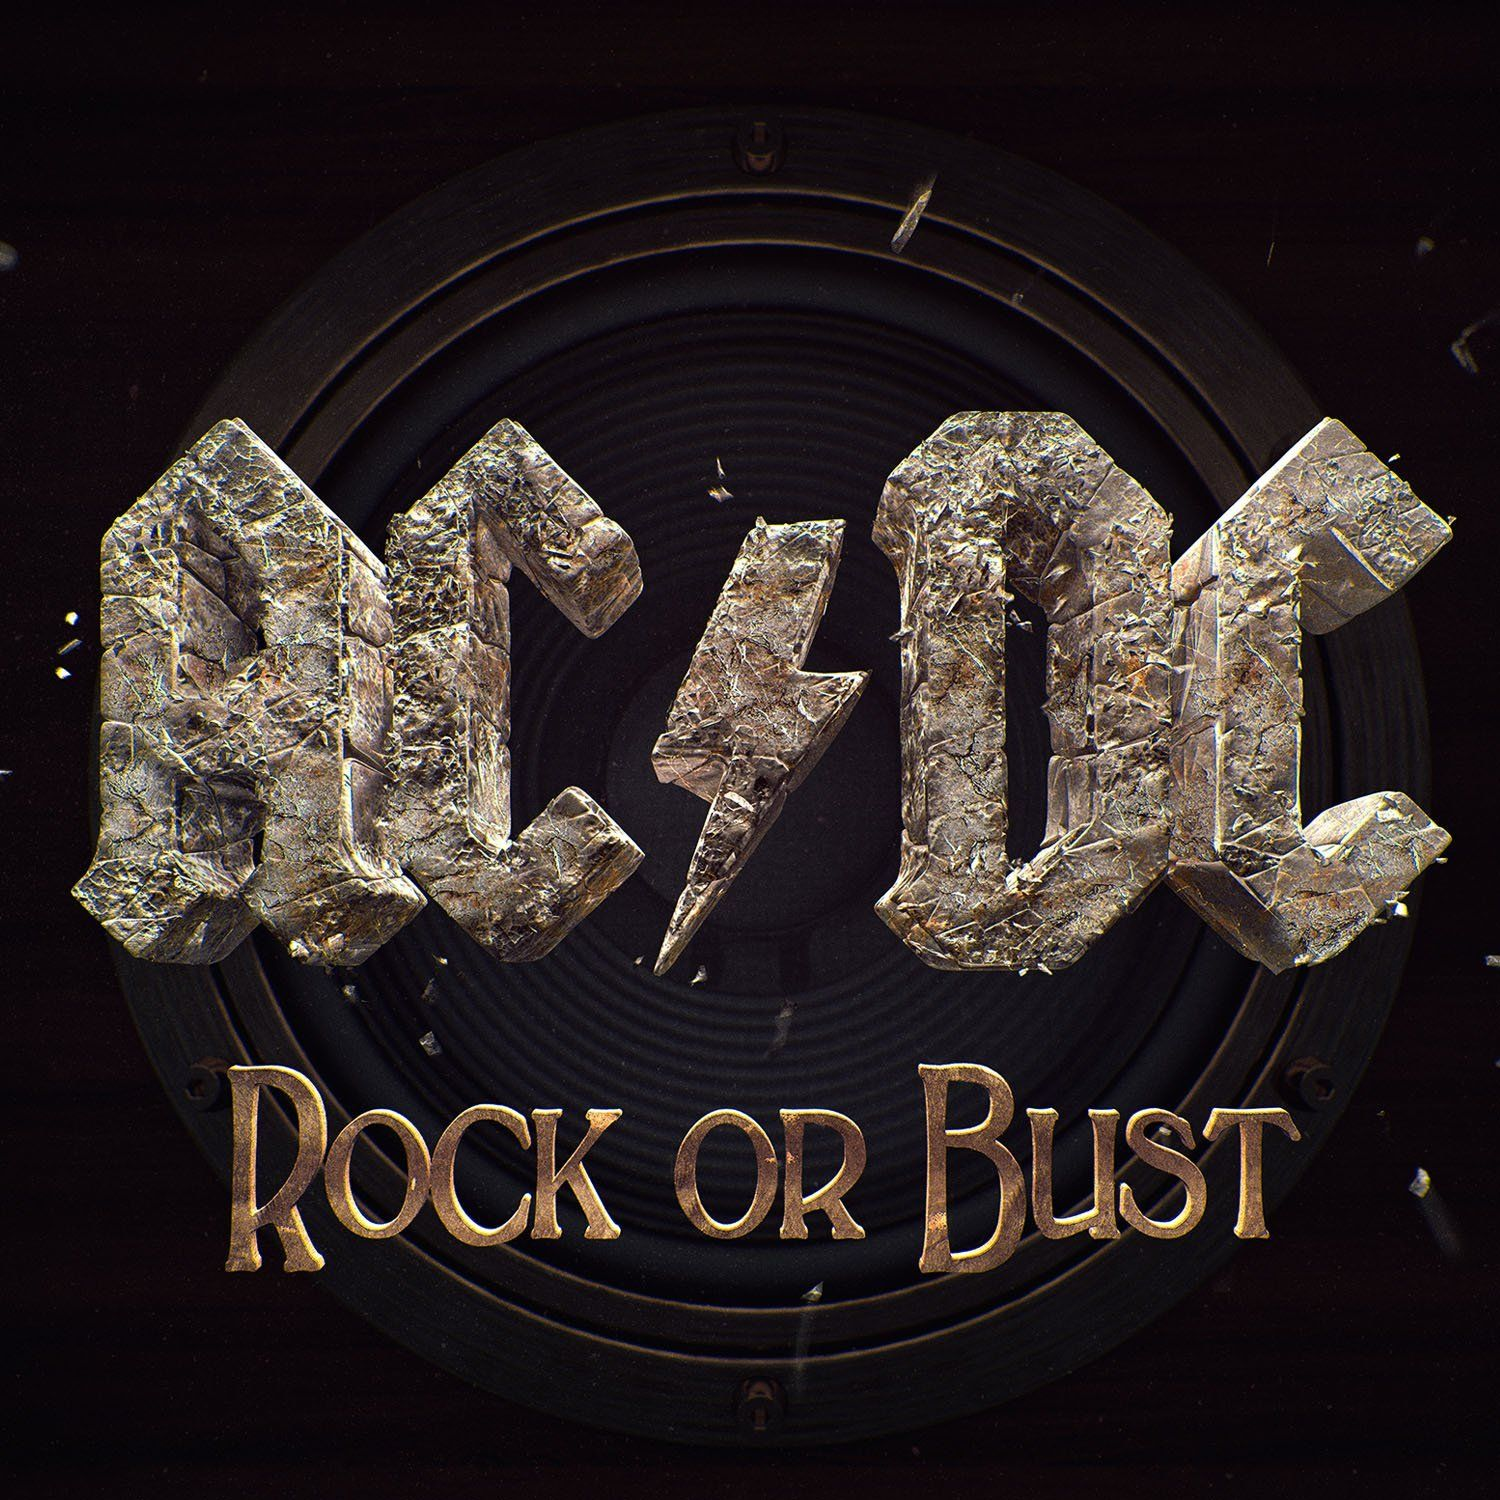 AC/DC - Rock Or Bust album cover